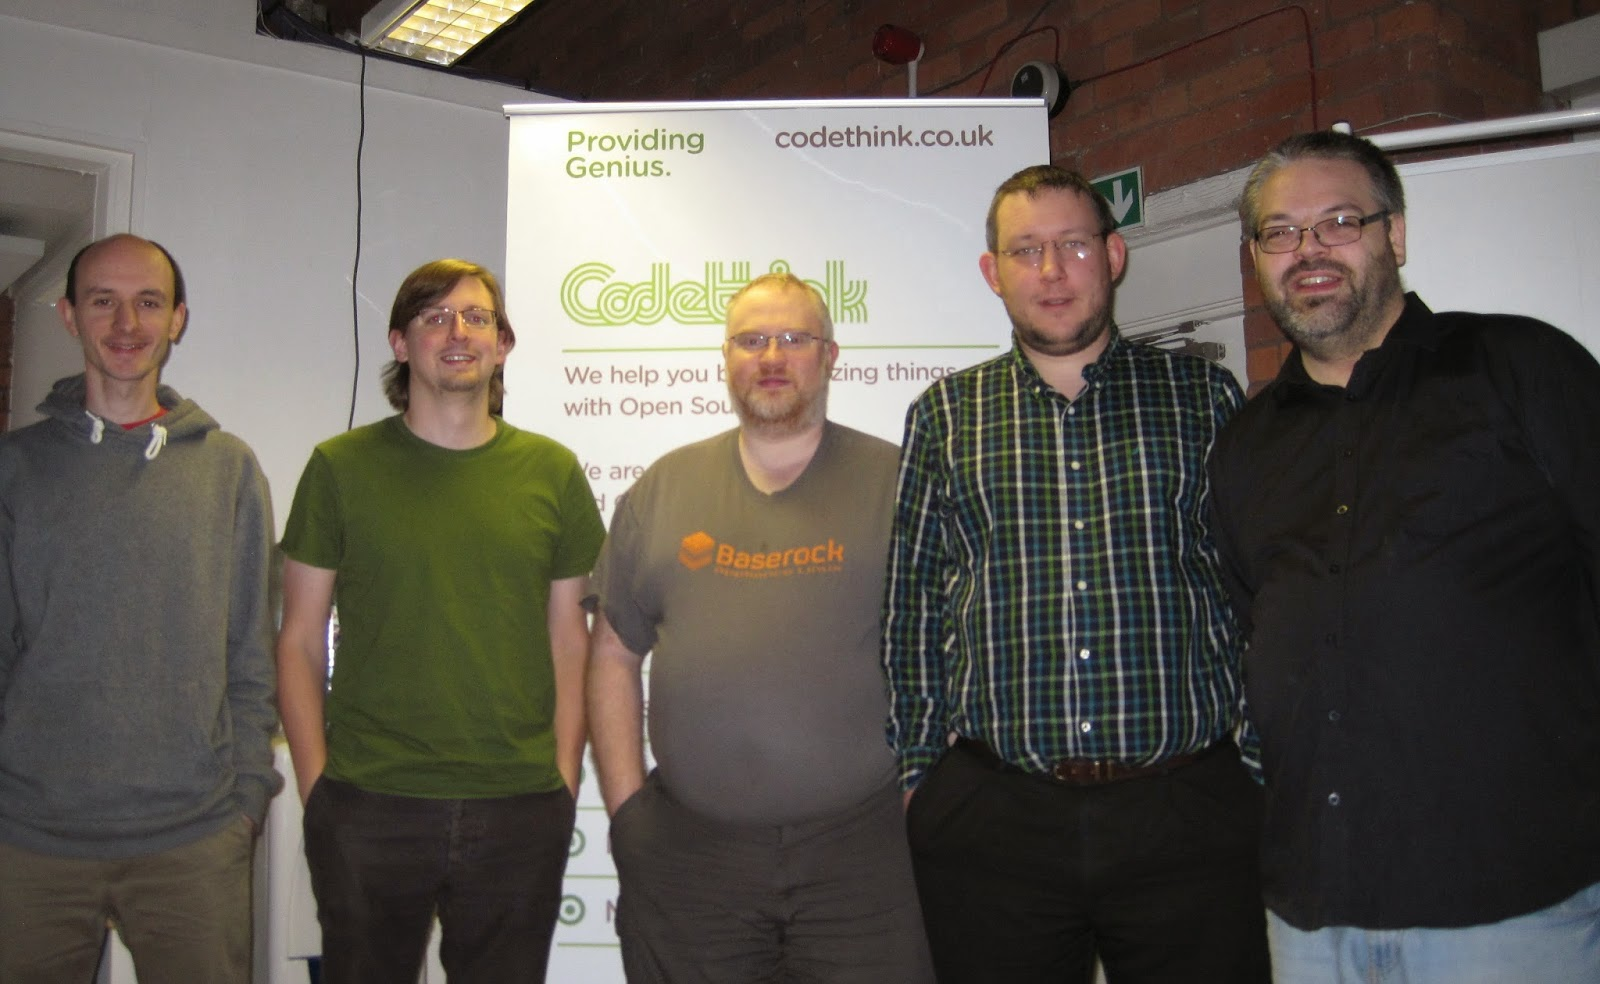 Michael Drake, John-Mark Bell, Daniel Silverstone, Rob Kendrick and Vincent Sanders at the Codethink manchester office